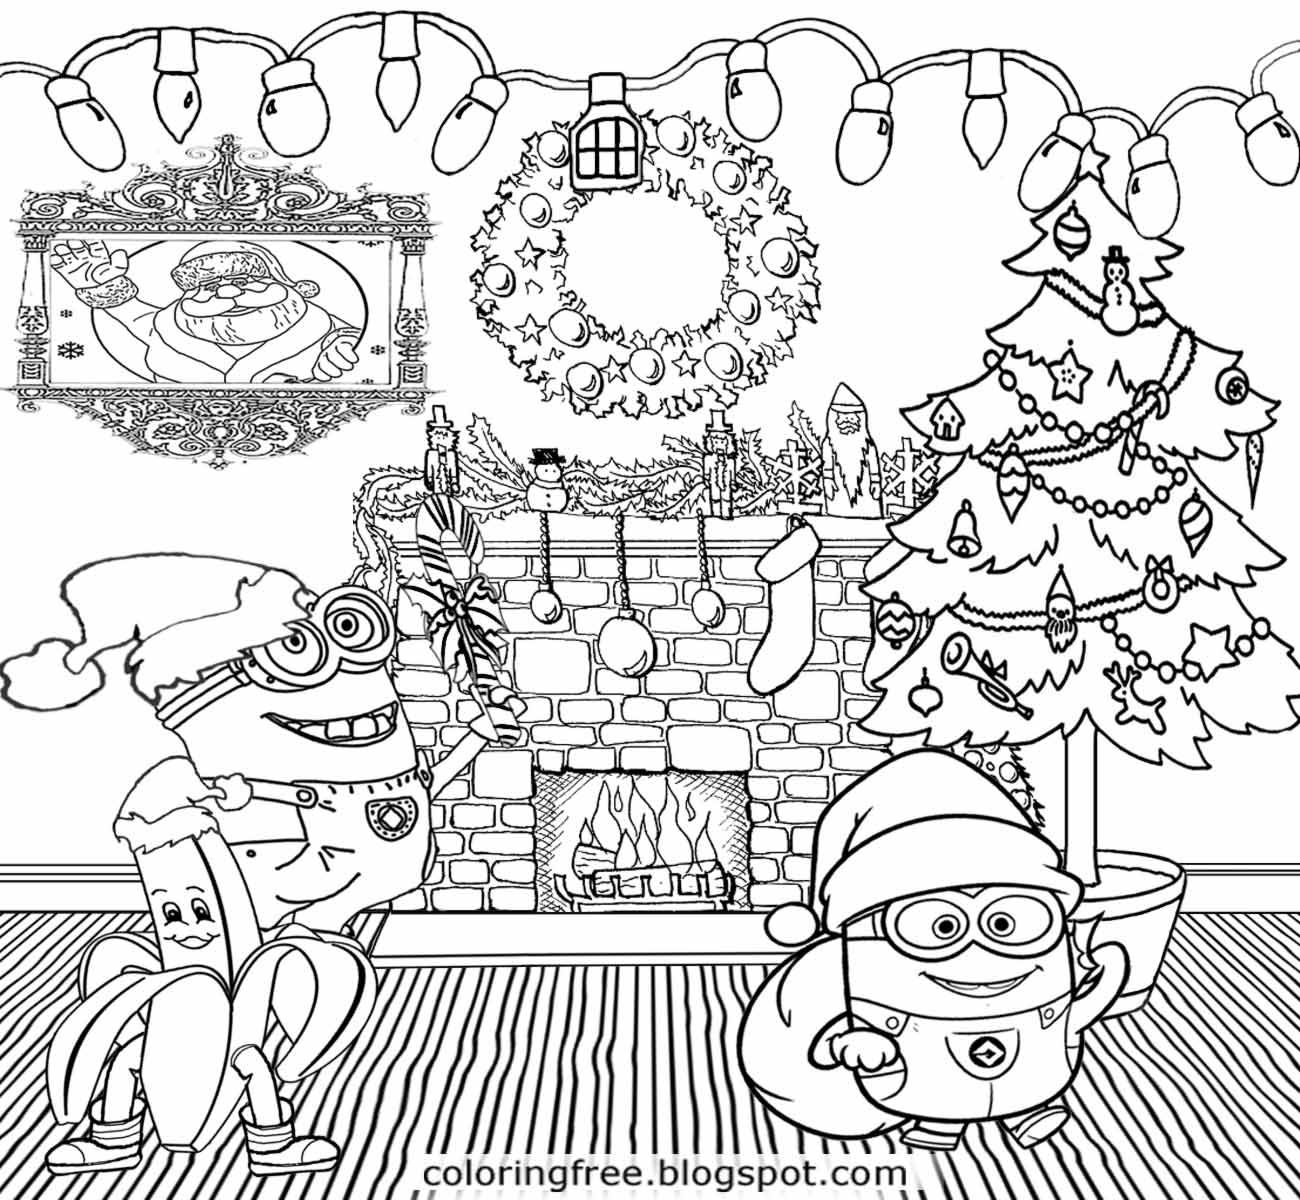 Holiday Decorations Merry Christmas Minions Coloring Pages Cool Things To Draw For Older Chi Minion Coloring Pages Cool Coloring Pages Christmas Coloring Pages